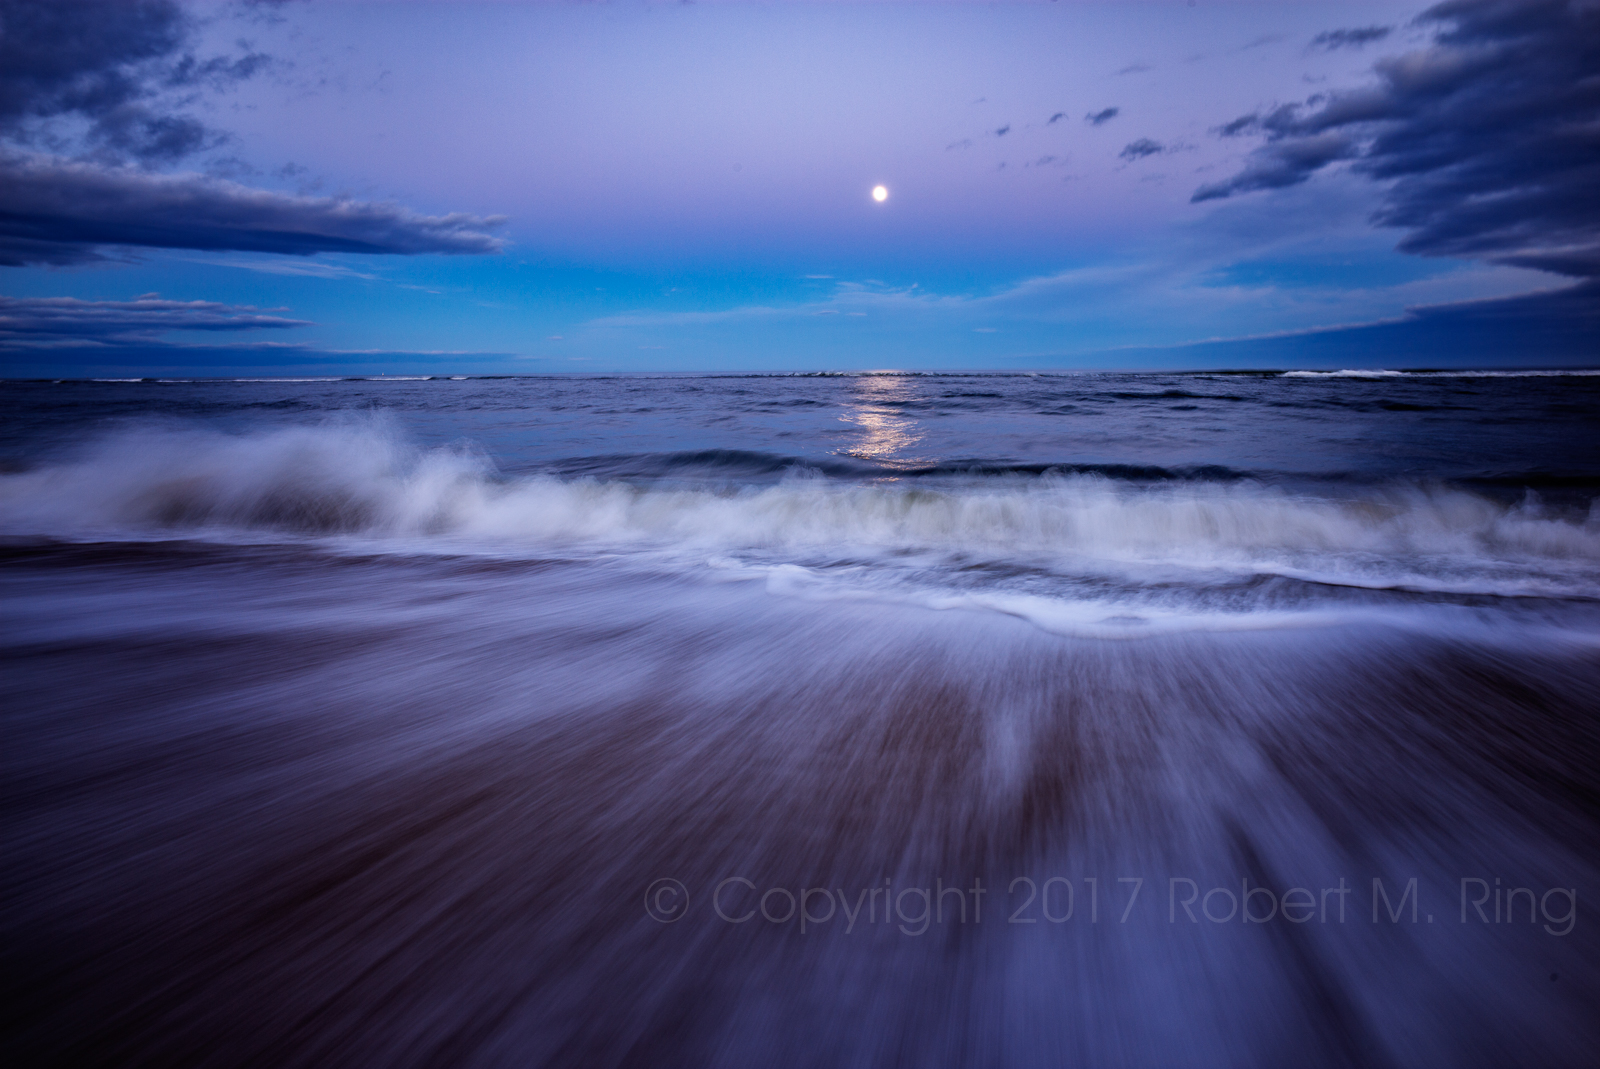 Plum Island, newburyport, MA, New England, coast, atlantic, moon, purple sky, long exposure, photo